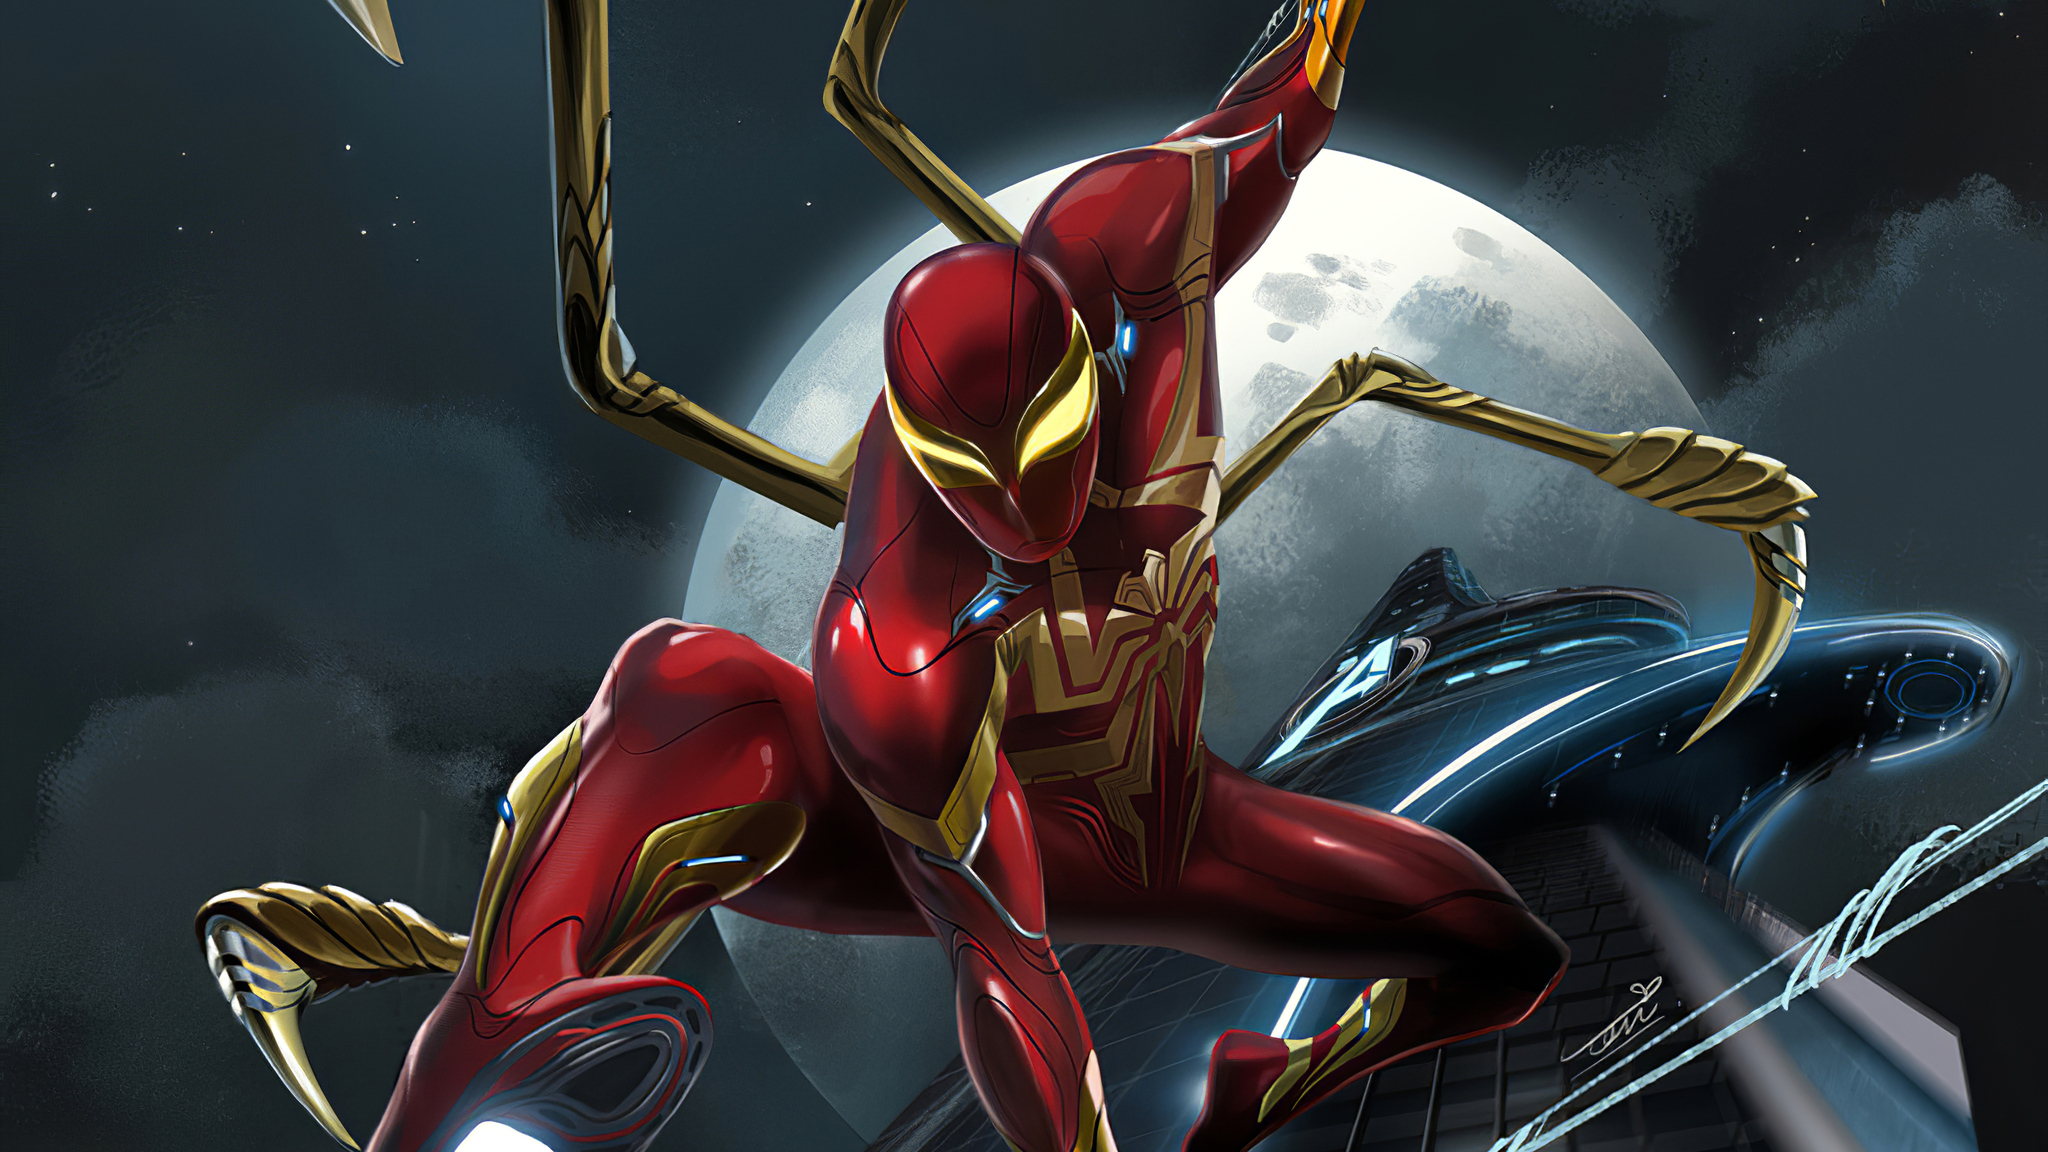 red-spider-iron-suit-4k-o5.jpg